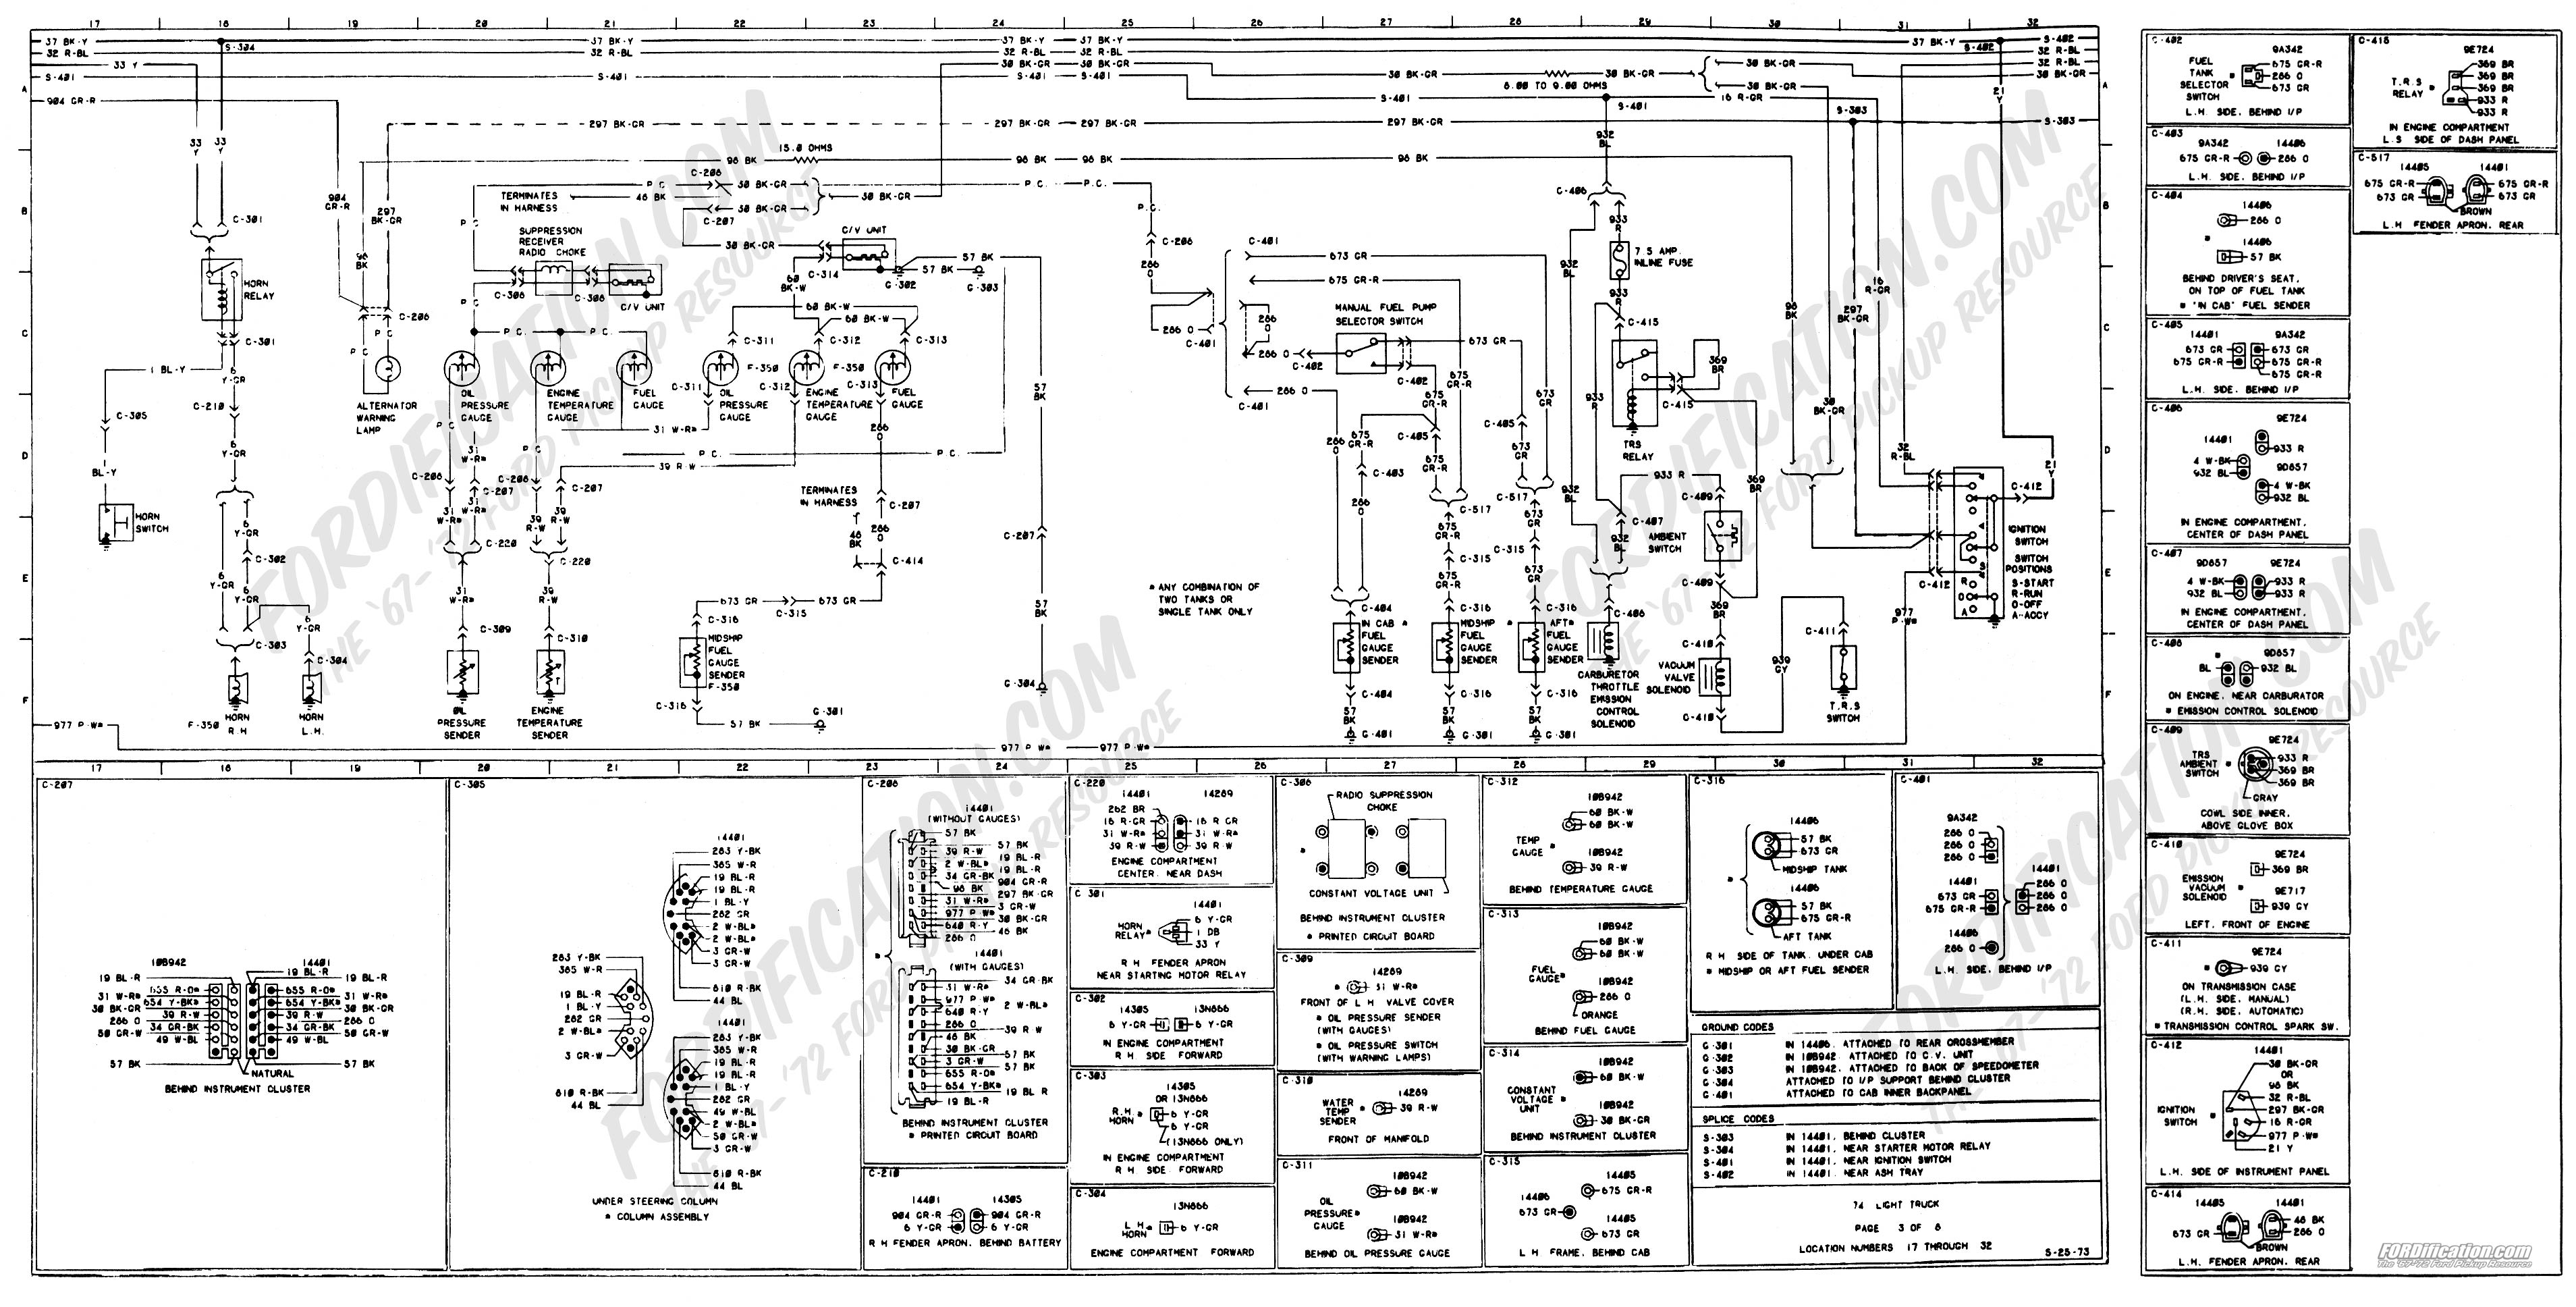 wiring_74master_3of8 1973 1979 ford truck wiring diagrams & schematics fordification net 1979 bronco fuse box diagram at alyssarenee.co